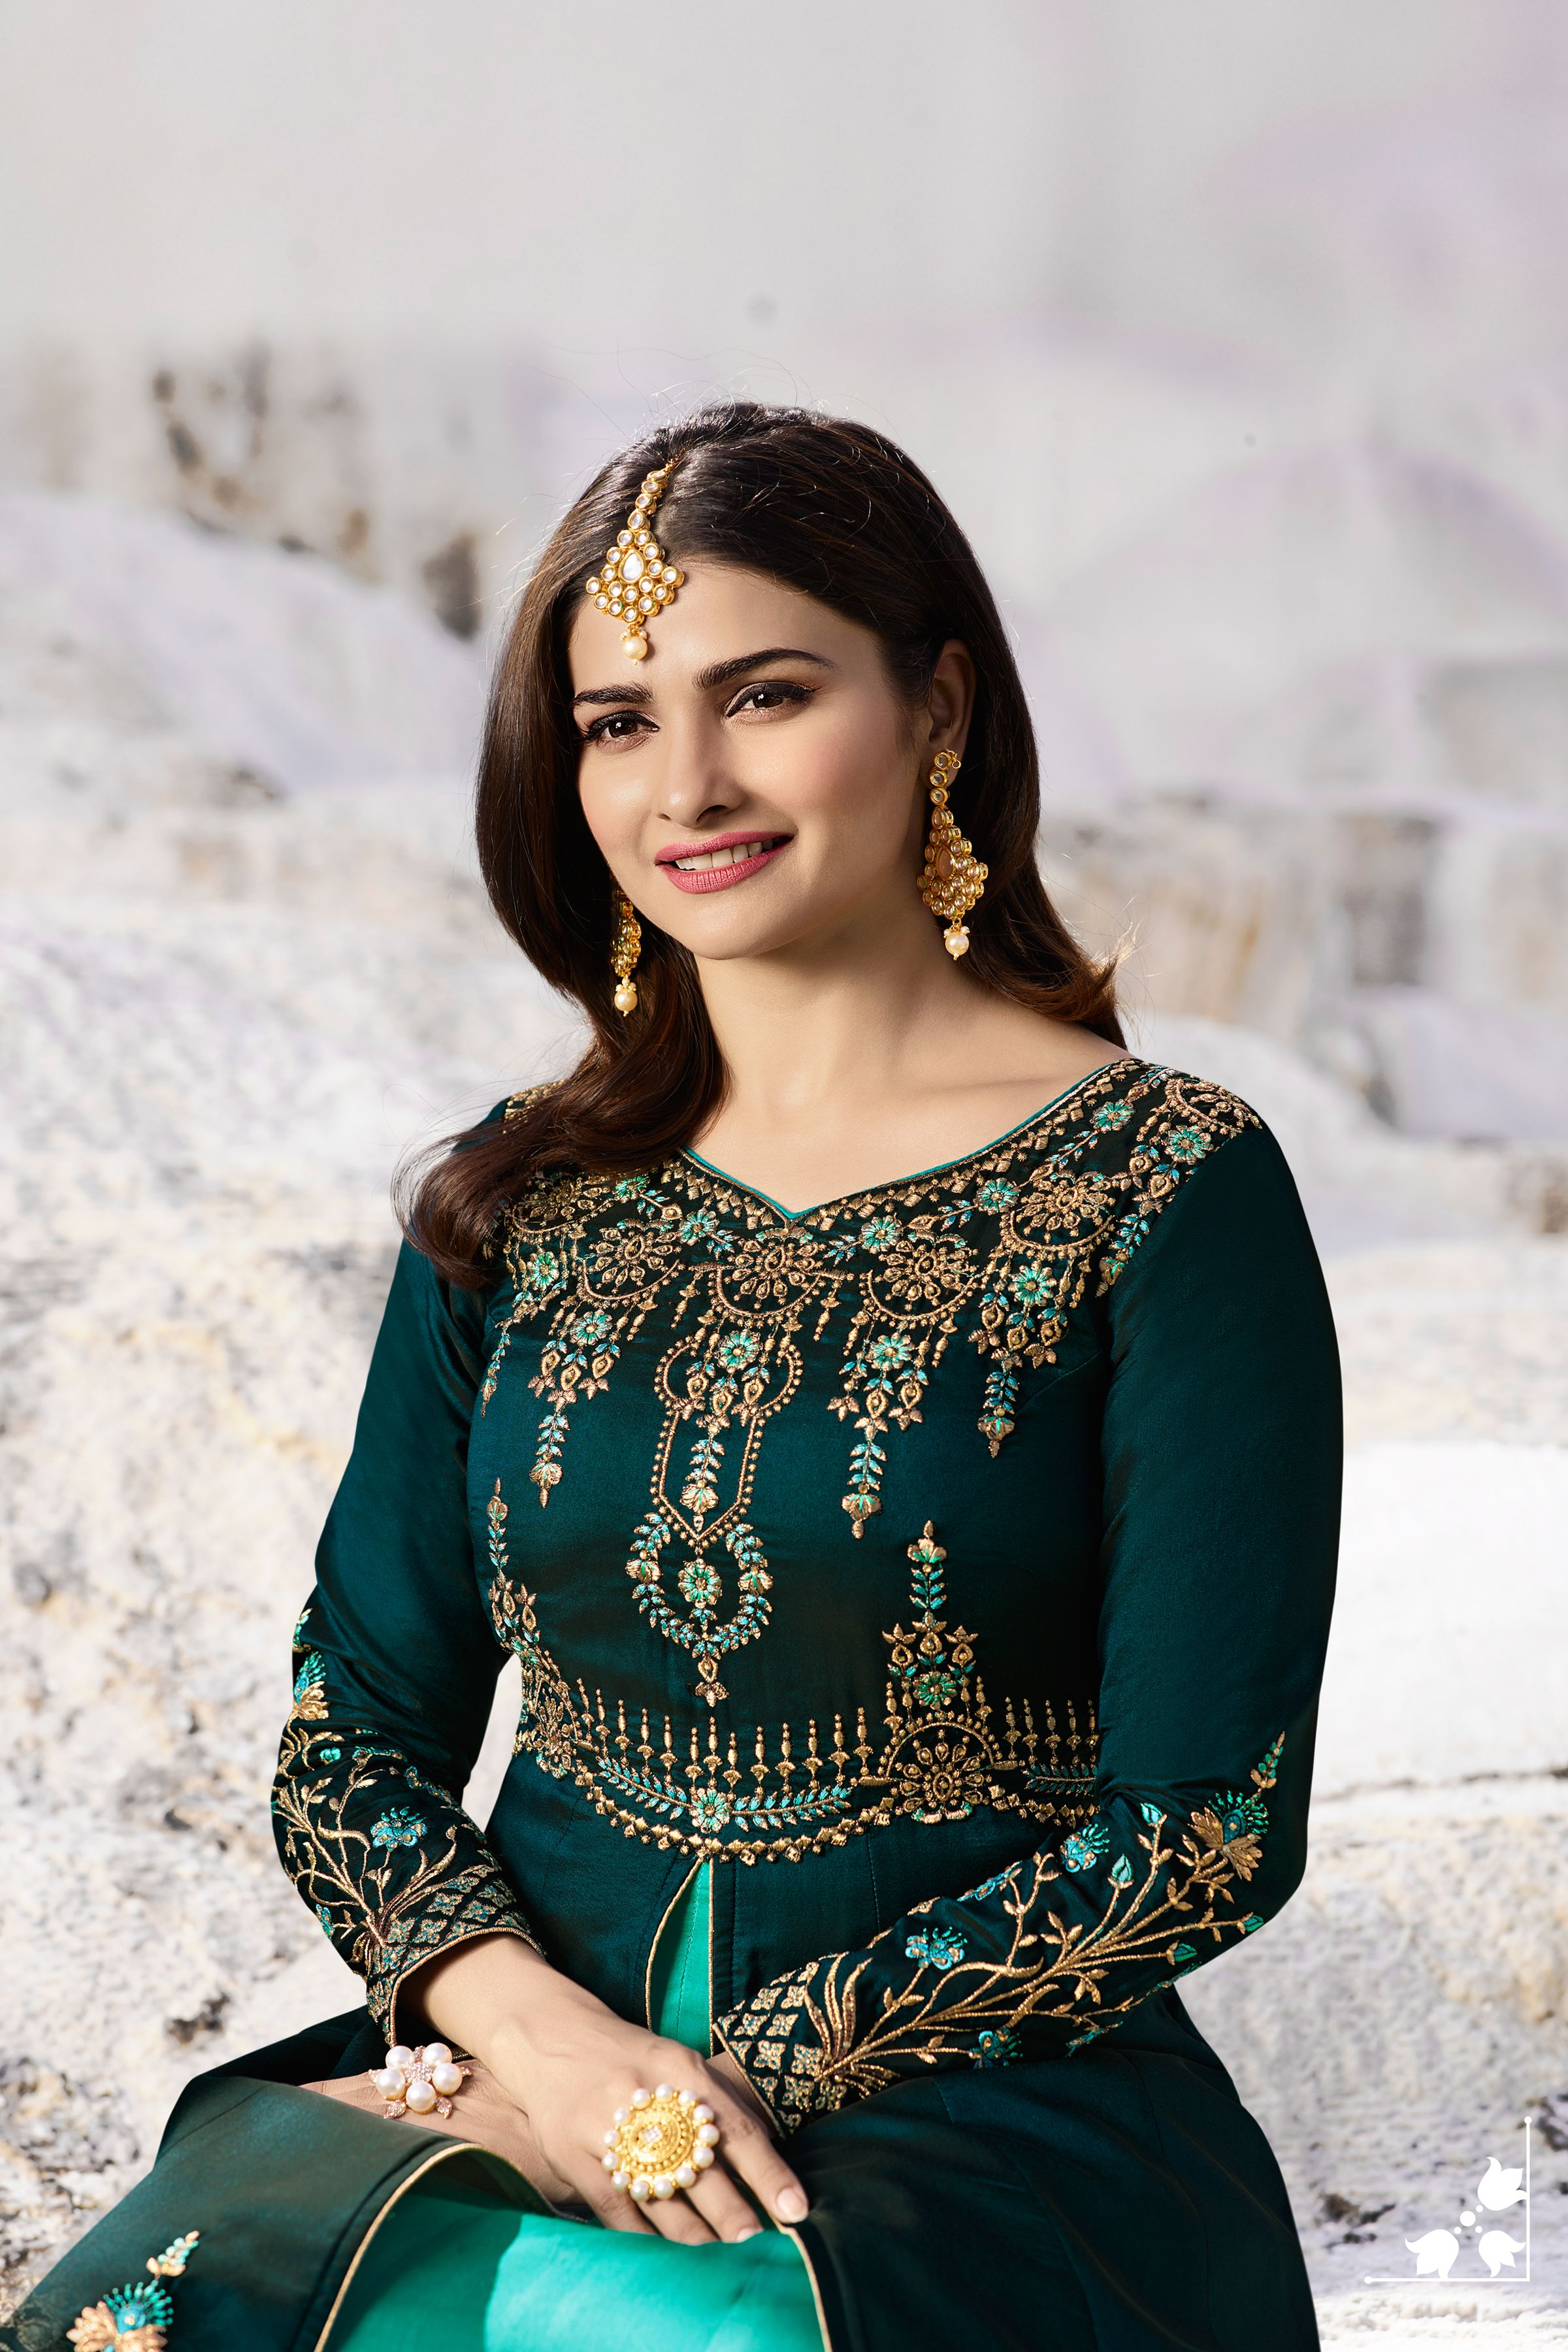 5c107211a5 Wine and Baby Pink Embroidered Long Sleeve Suit is Georgette Silk Top and  Santoon Bottom with Georgette Dupatta worn by Prachi Desai.